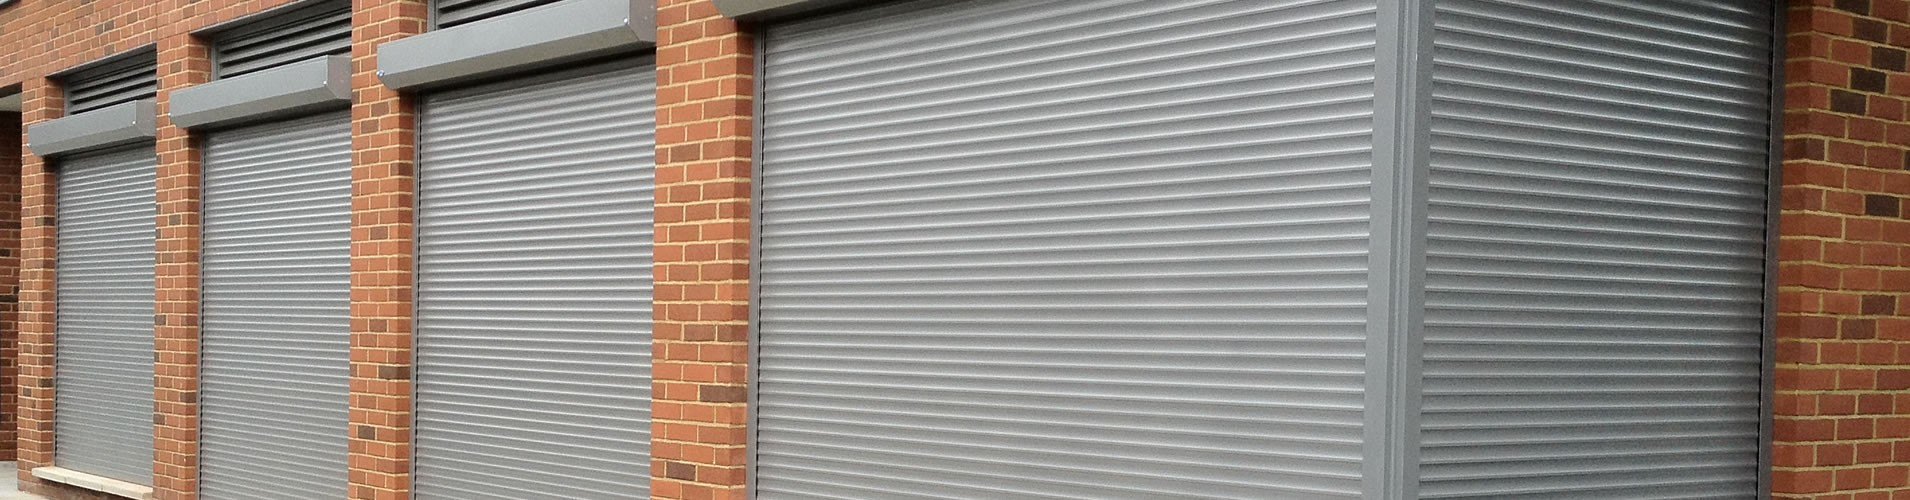 Storm & Security Shutters - Dallas, TX